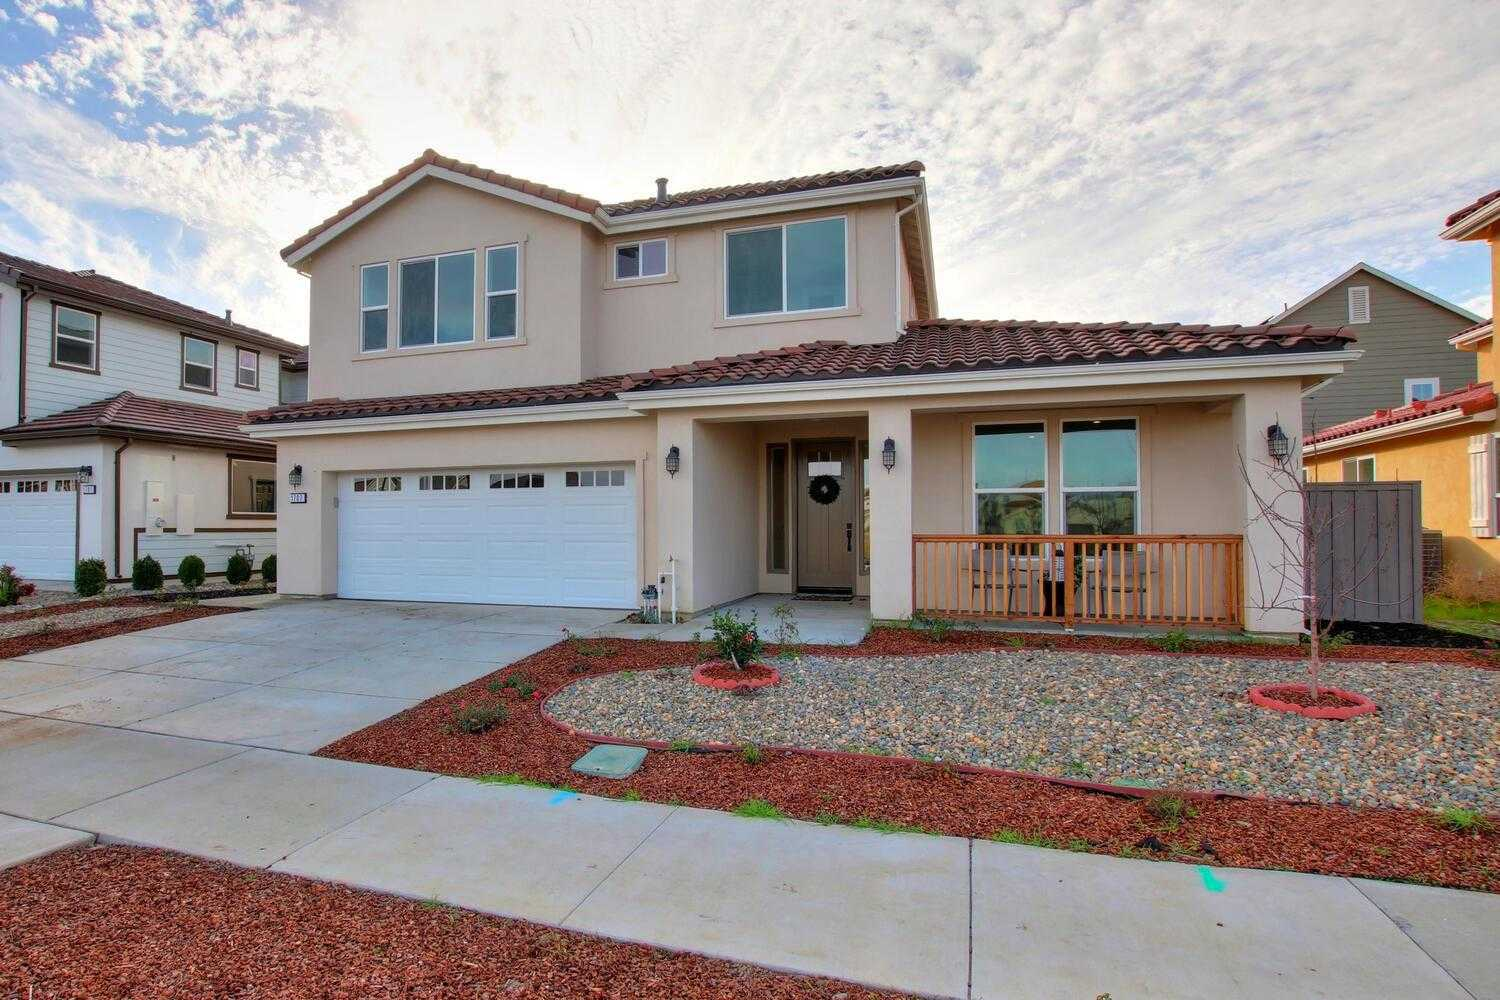 $1,359,000 - 6Br/6Ba -  for Sale in Cannery Village, Davis